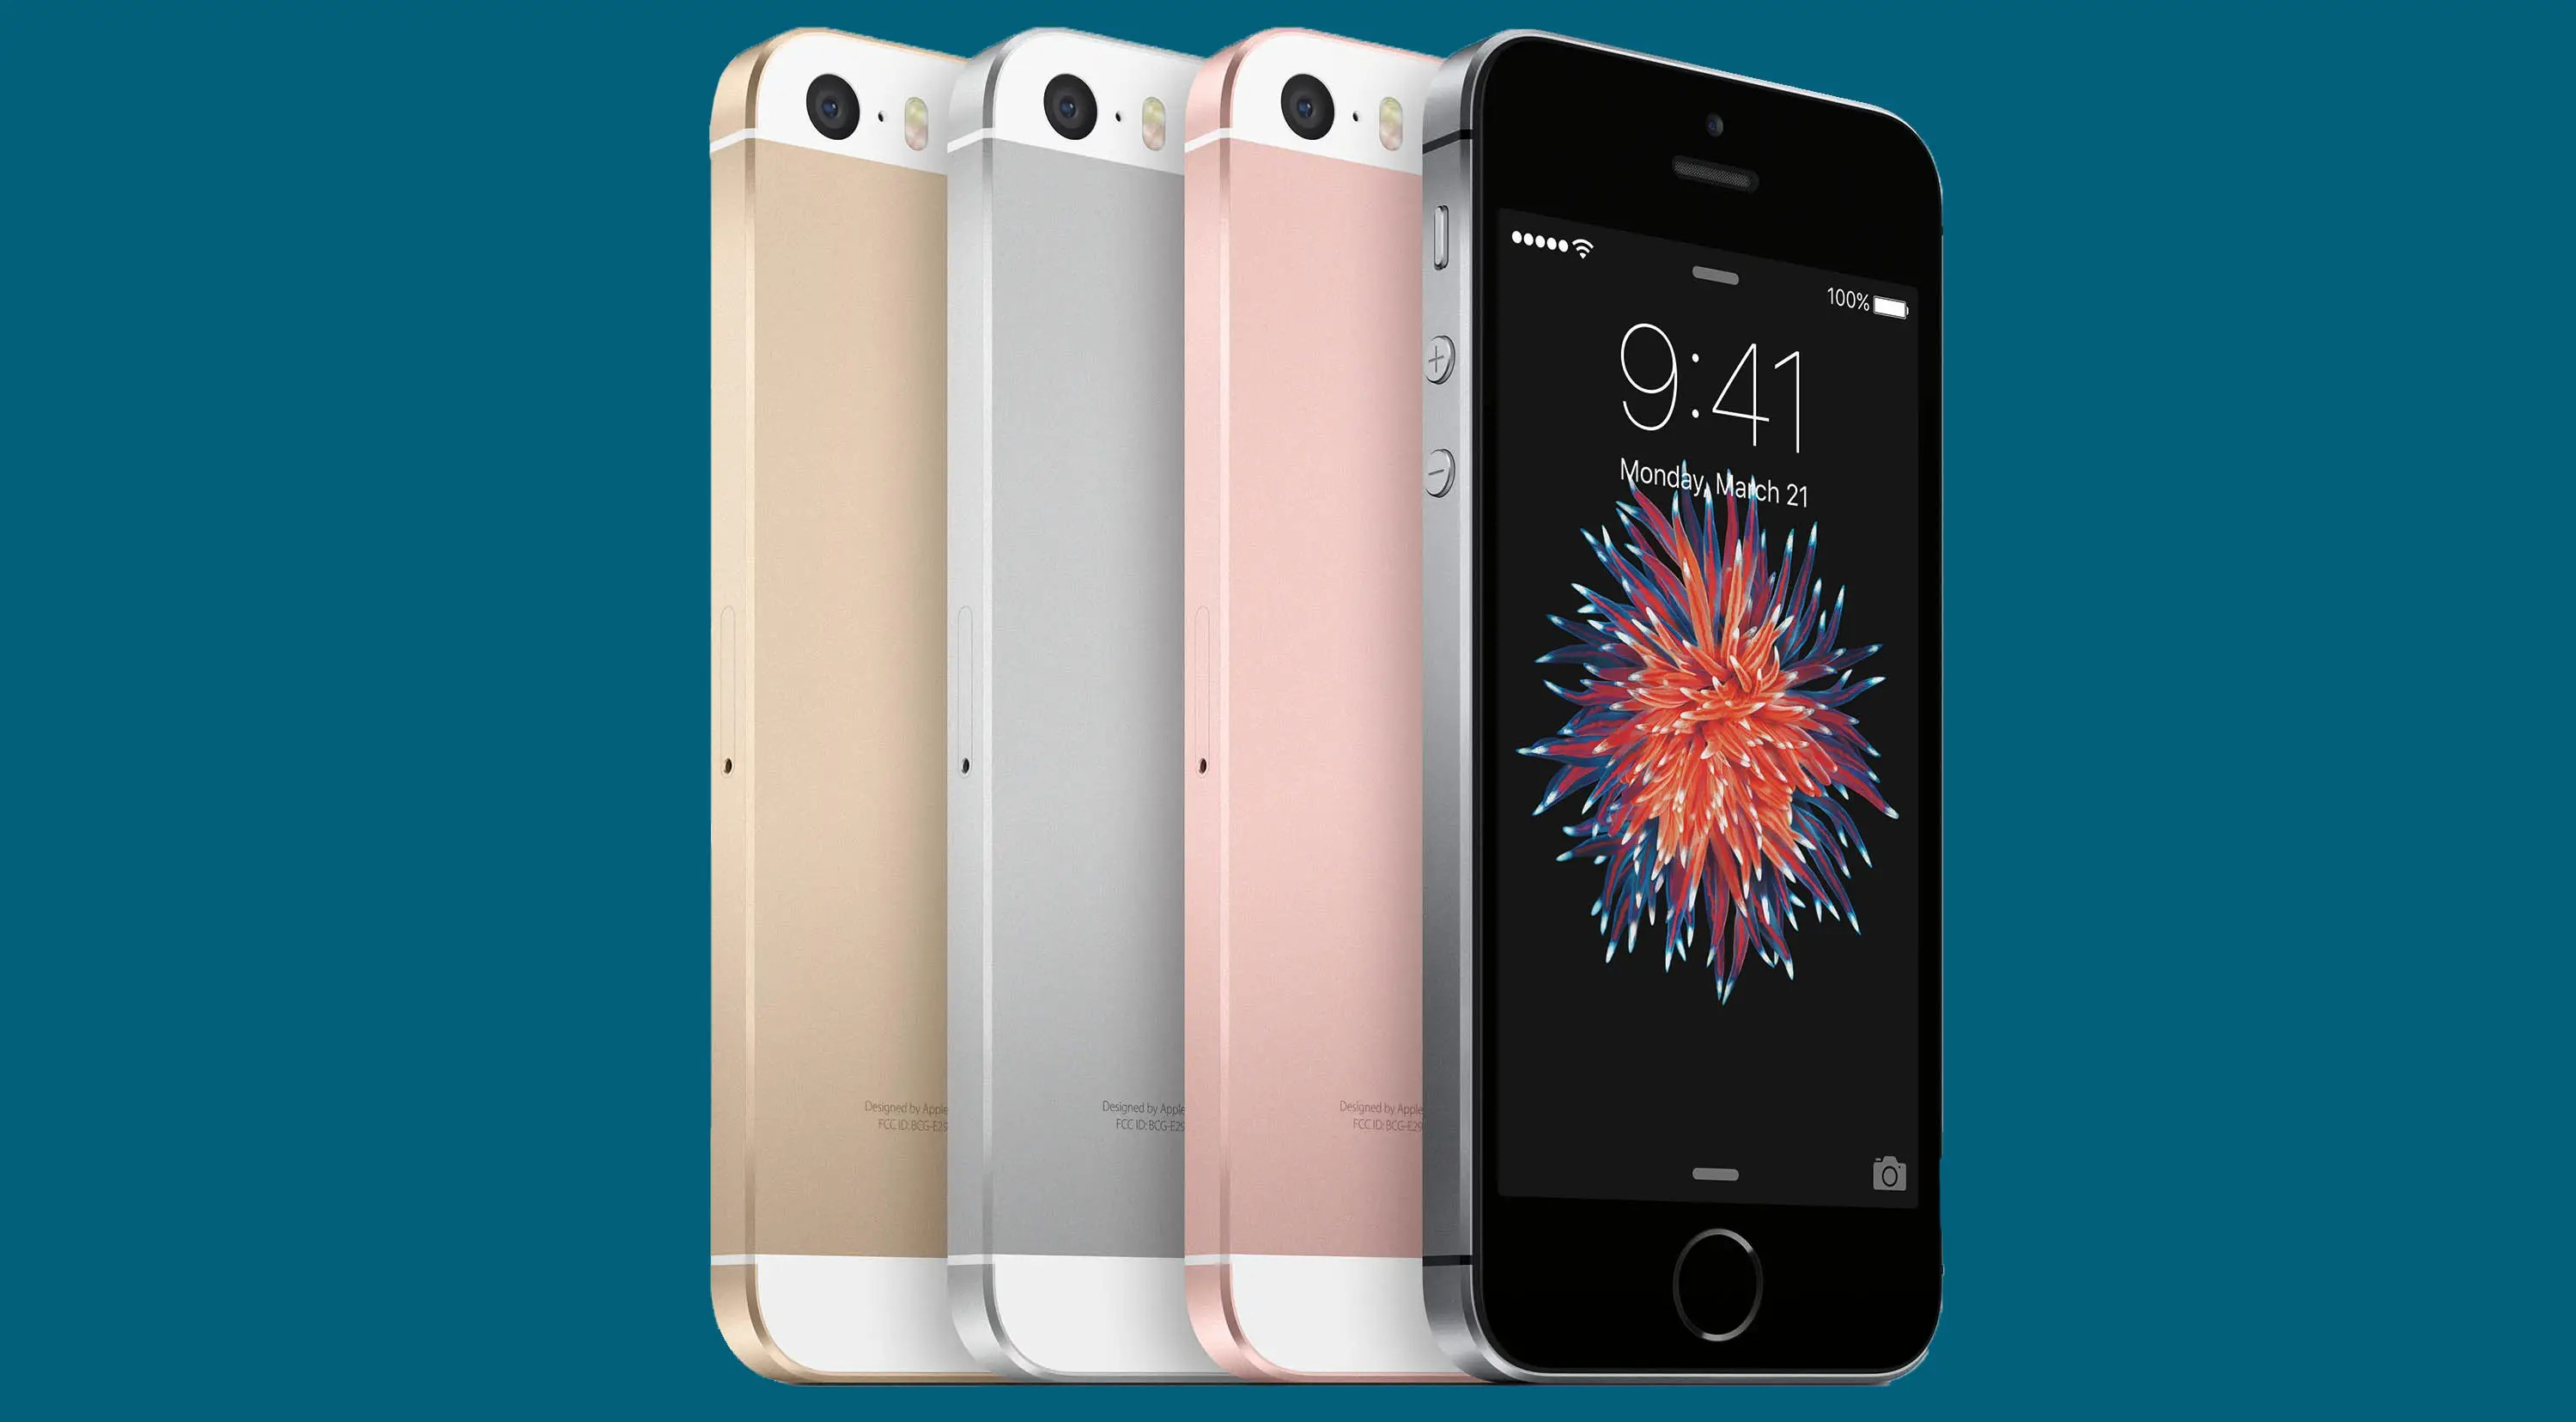 1. The iPhone SE is remarkably affordable at just $350 to start.